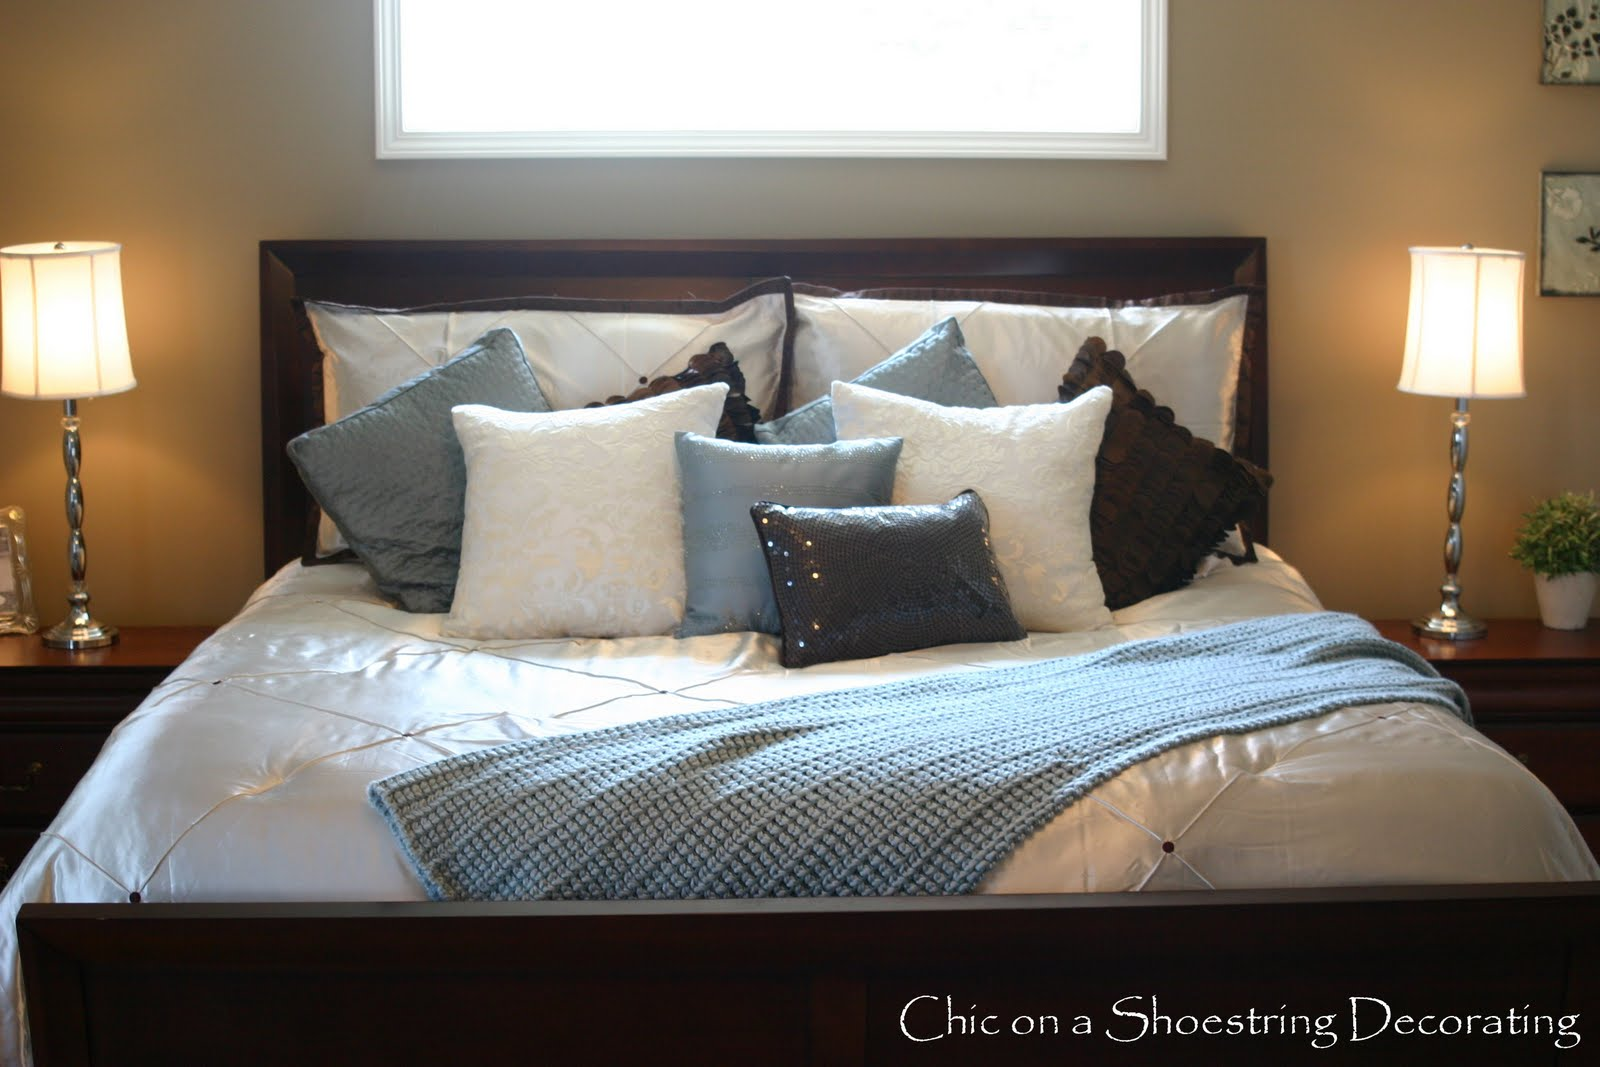 chic on a shoestring decorating king me. Black Bedroom Furniture Sets. Home Design Ideas